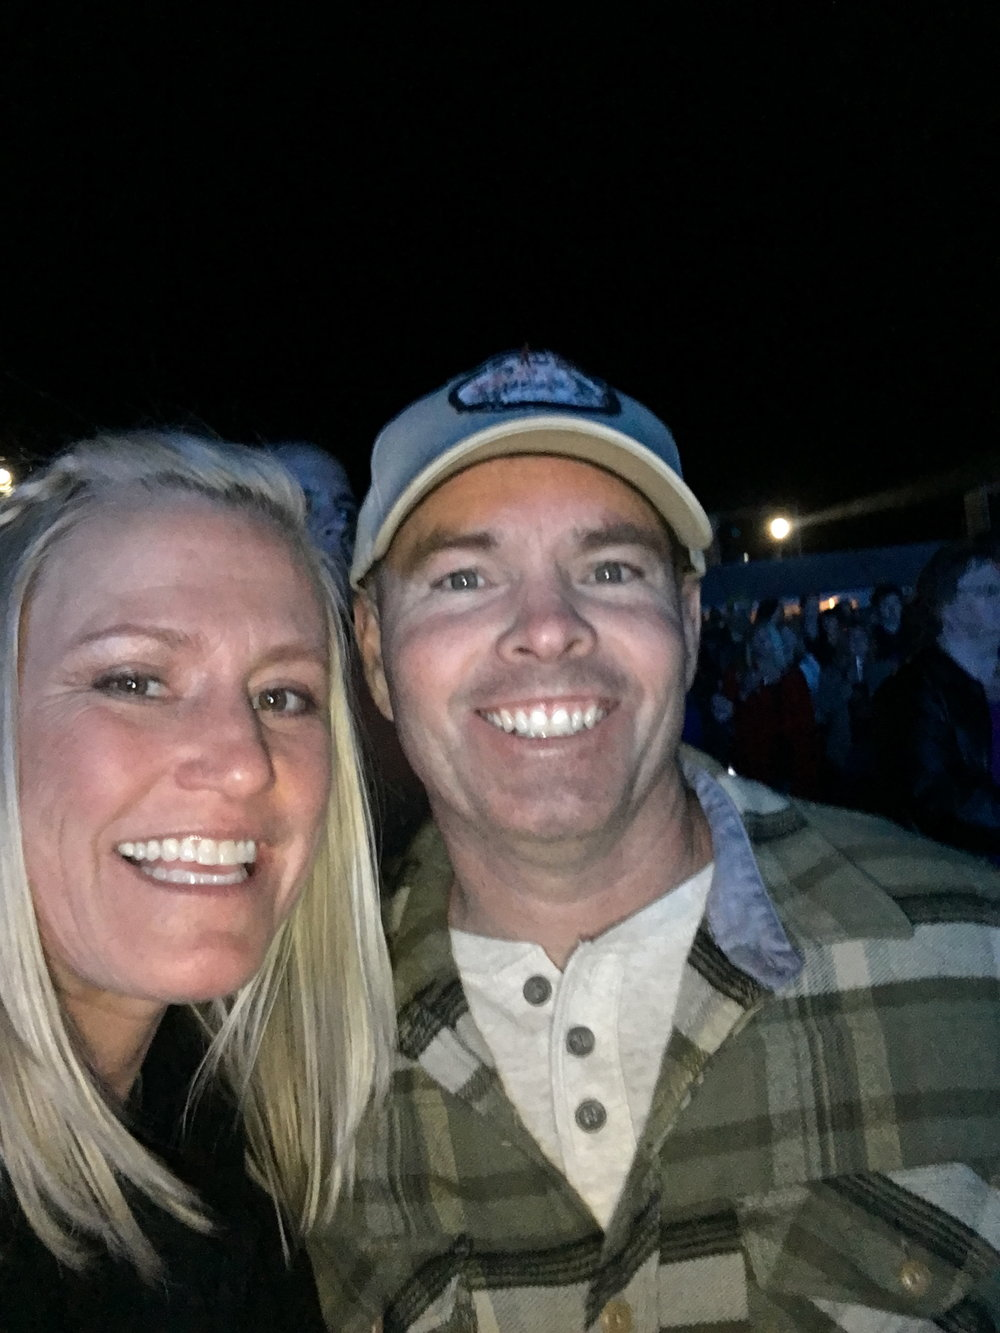 Enjoying the Dierks Bentley concert.